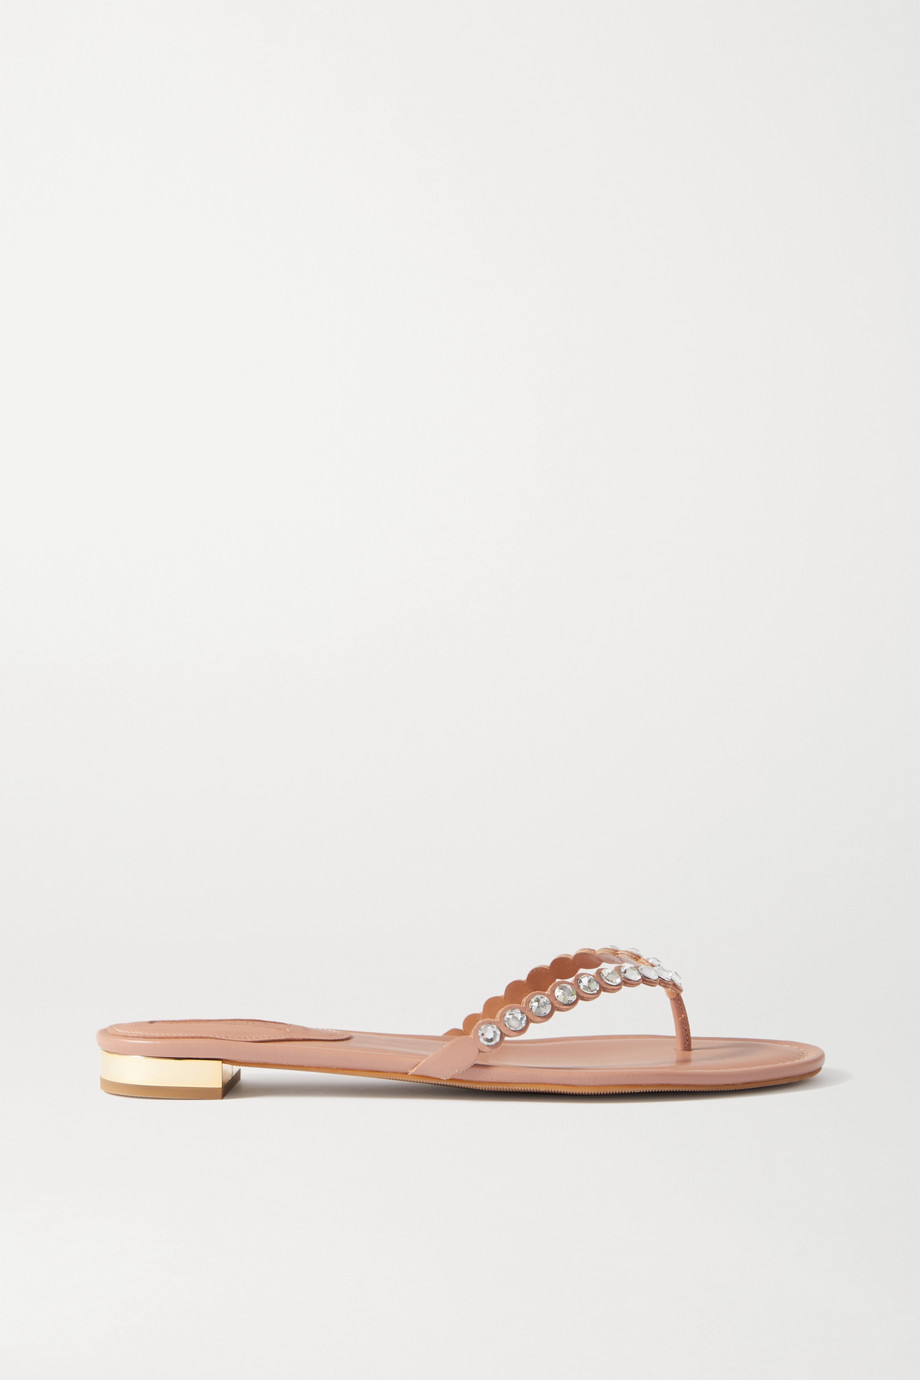 Aquazzura Tequila crystal-embellished leather flip flops